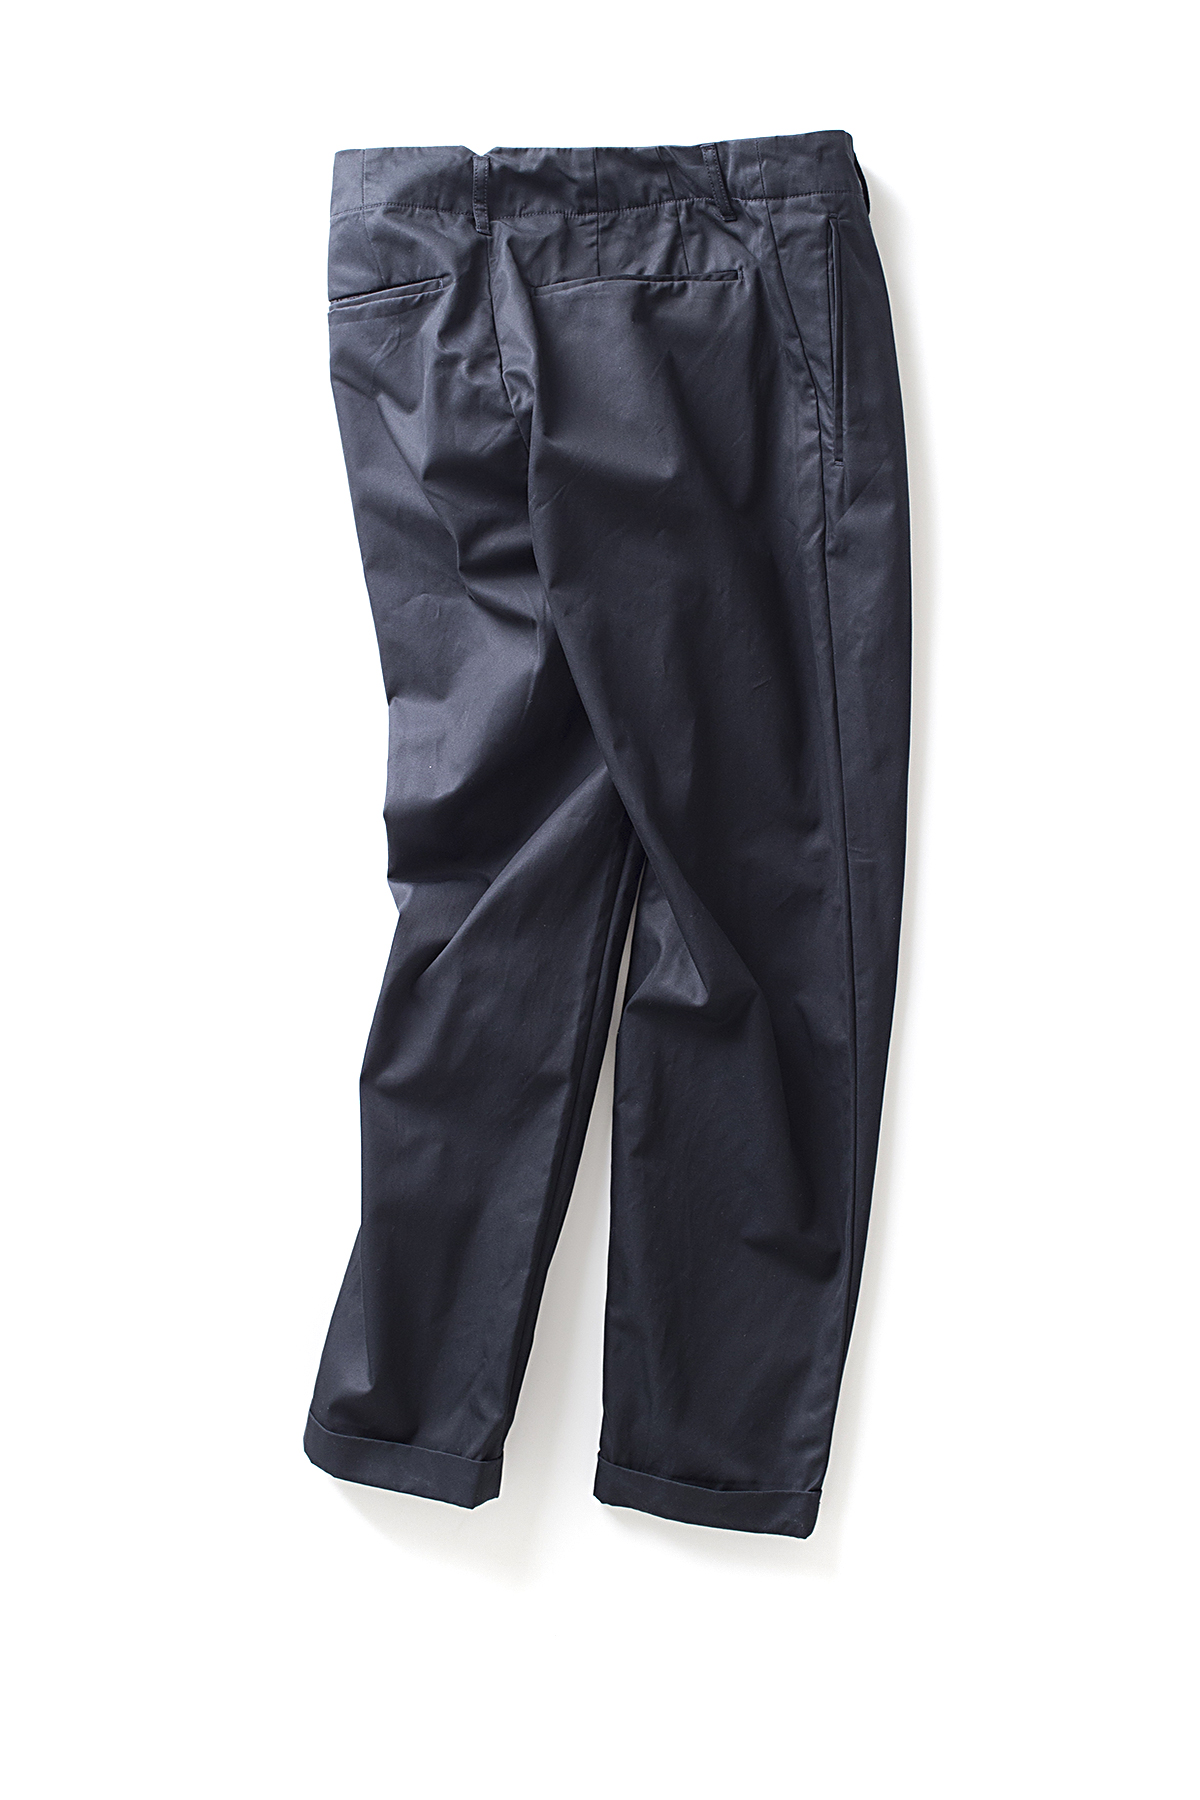 Still By Hand : Deep Tuck Slacks (Navy)